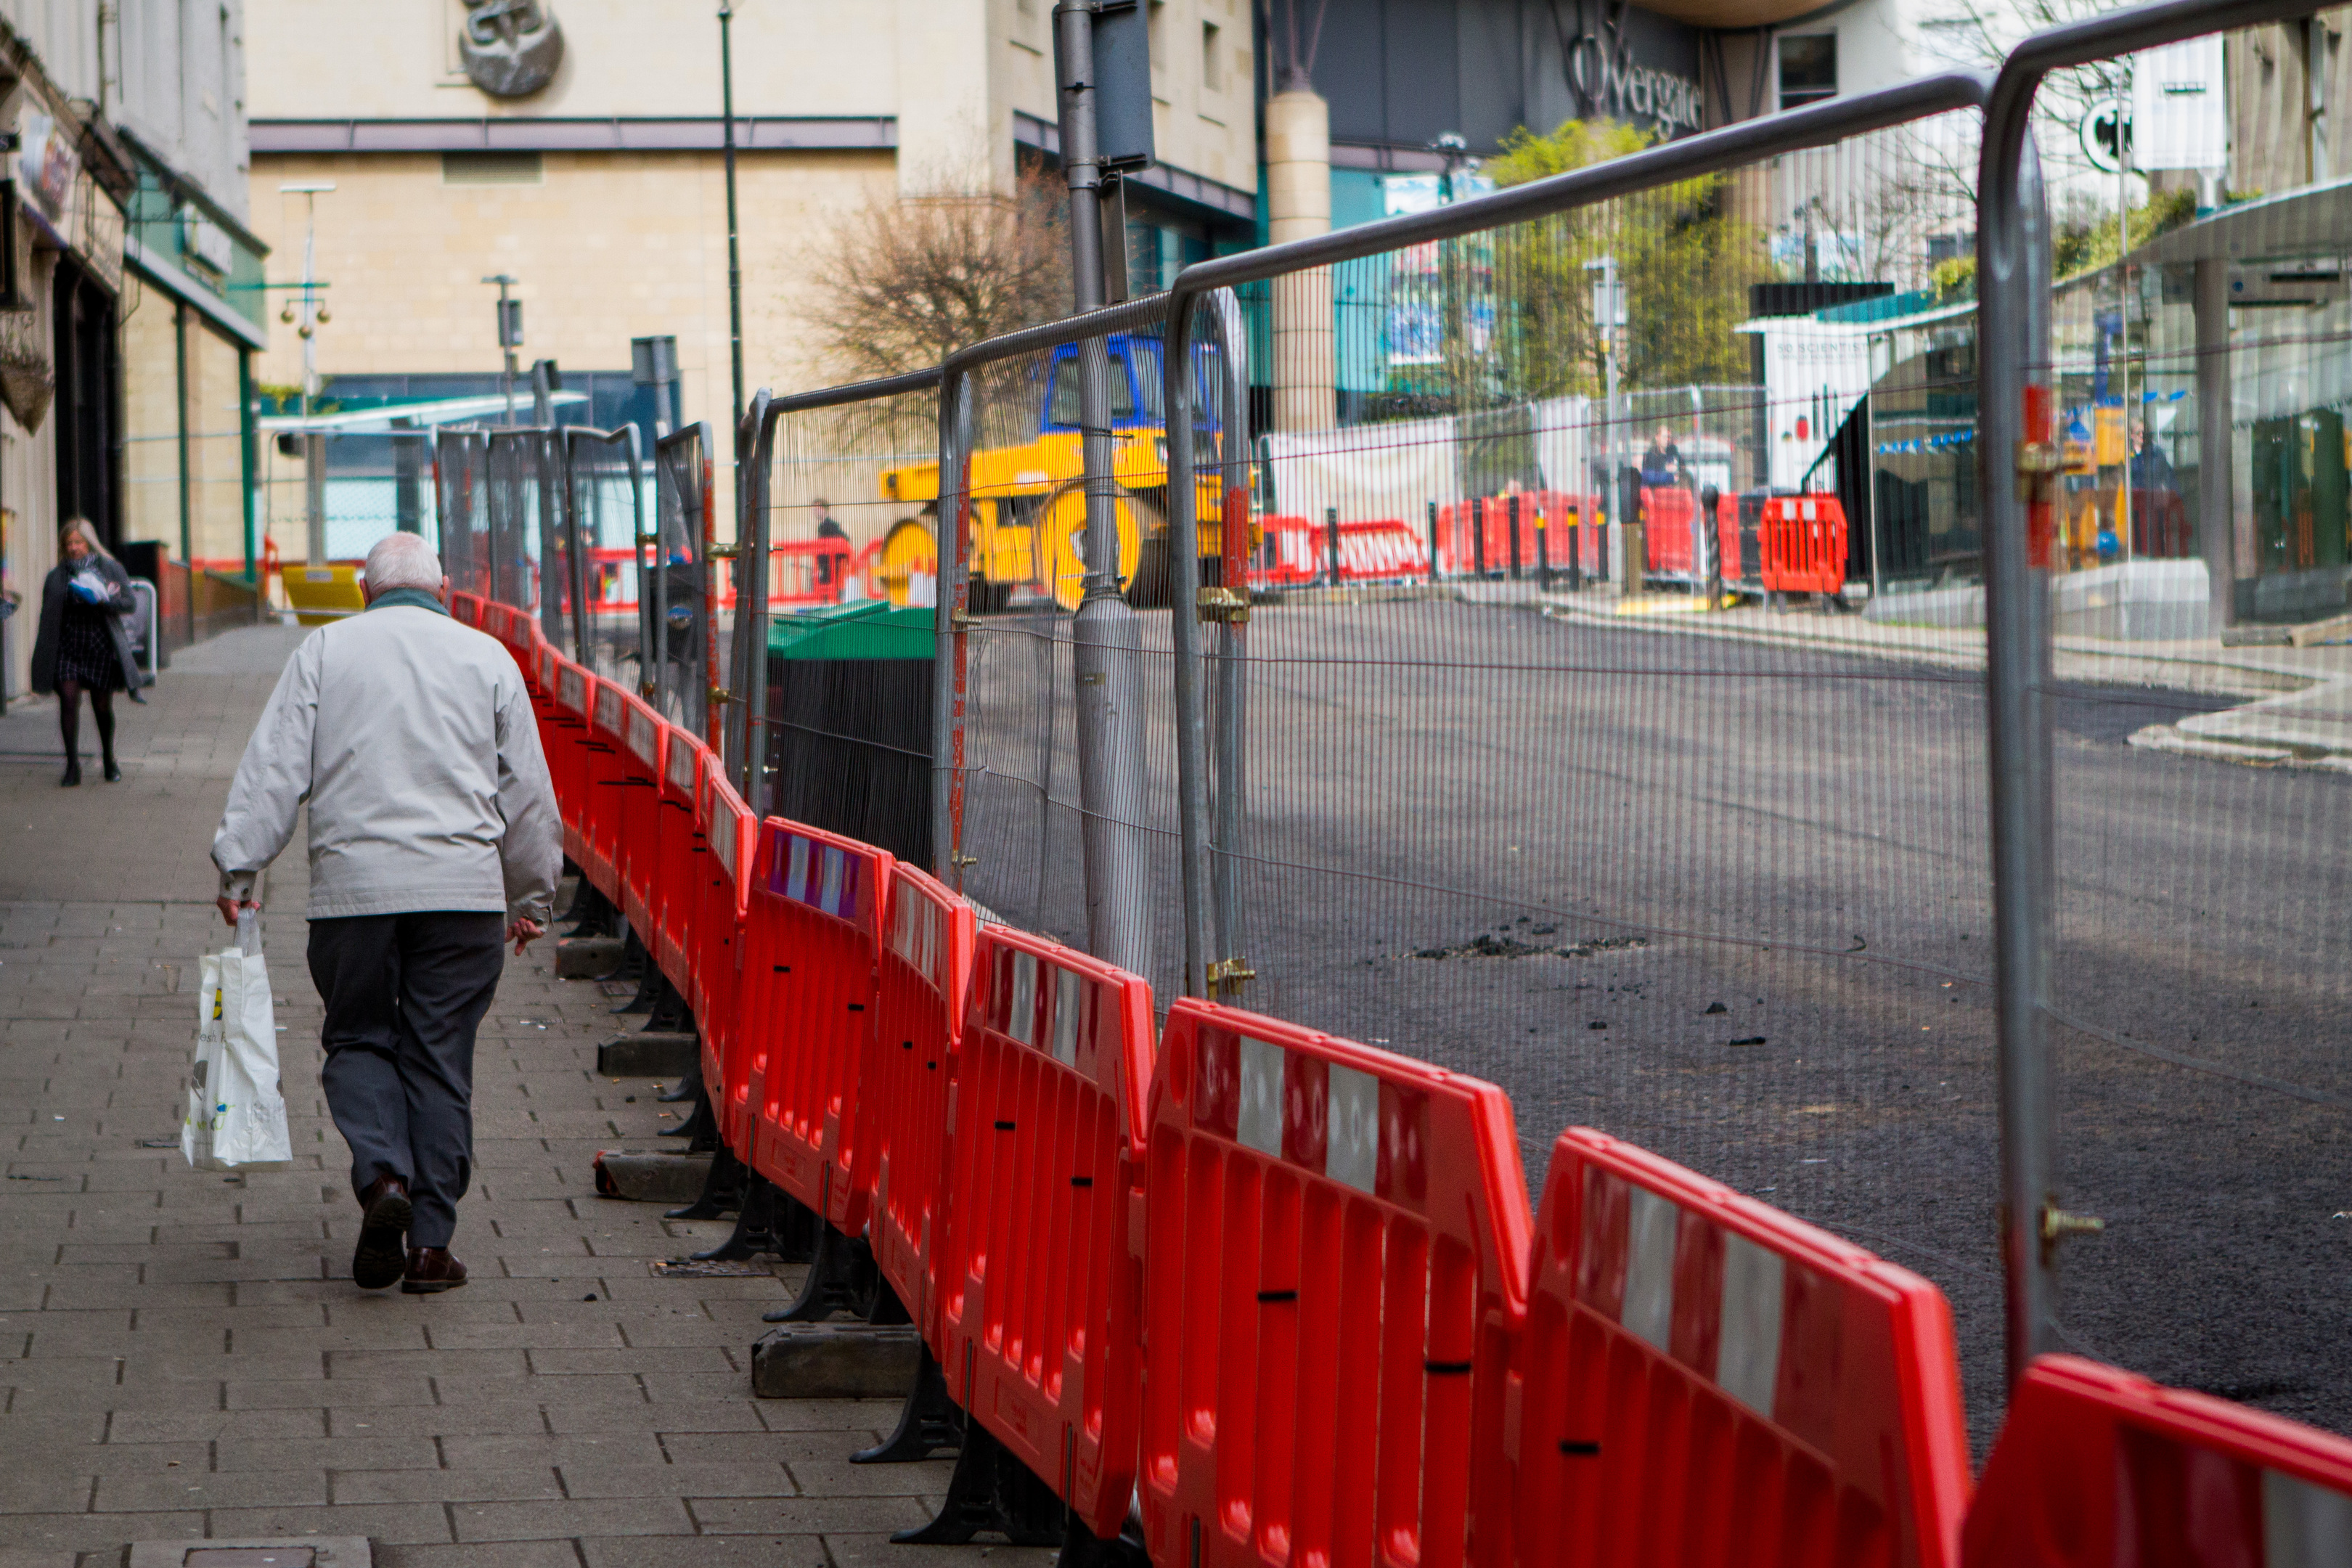 The roadworks have shut down large parts of Dundee city centre.